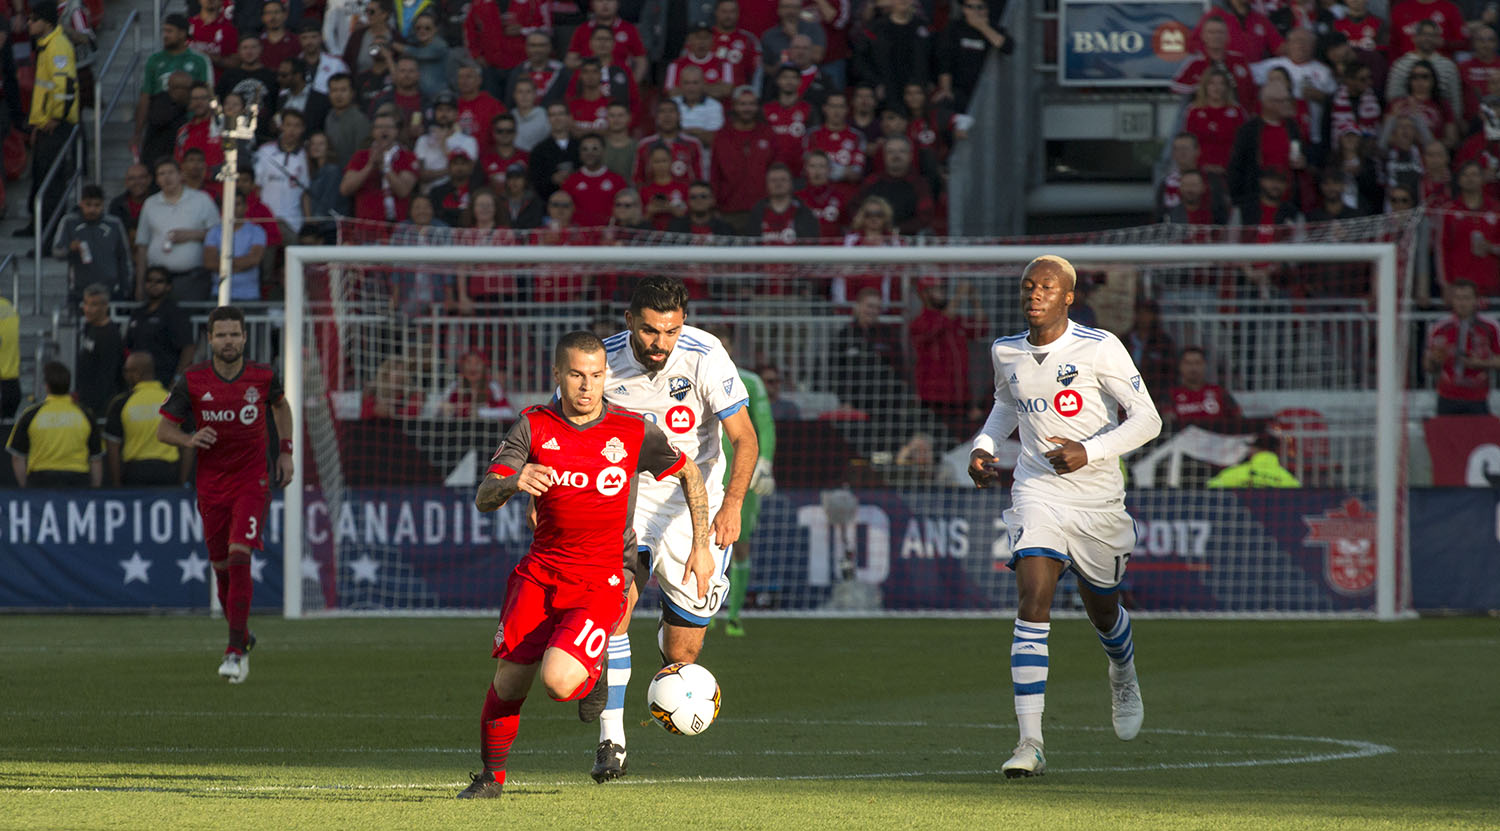 Sebastian Giovinco flies past the Montreal Impact defenders during a game in 2017.Image by Dennis Marciniak of denMAR Media.